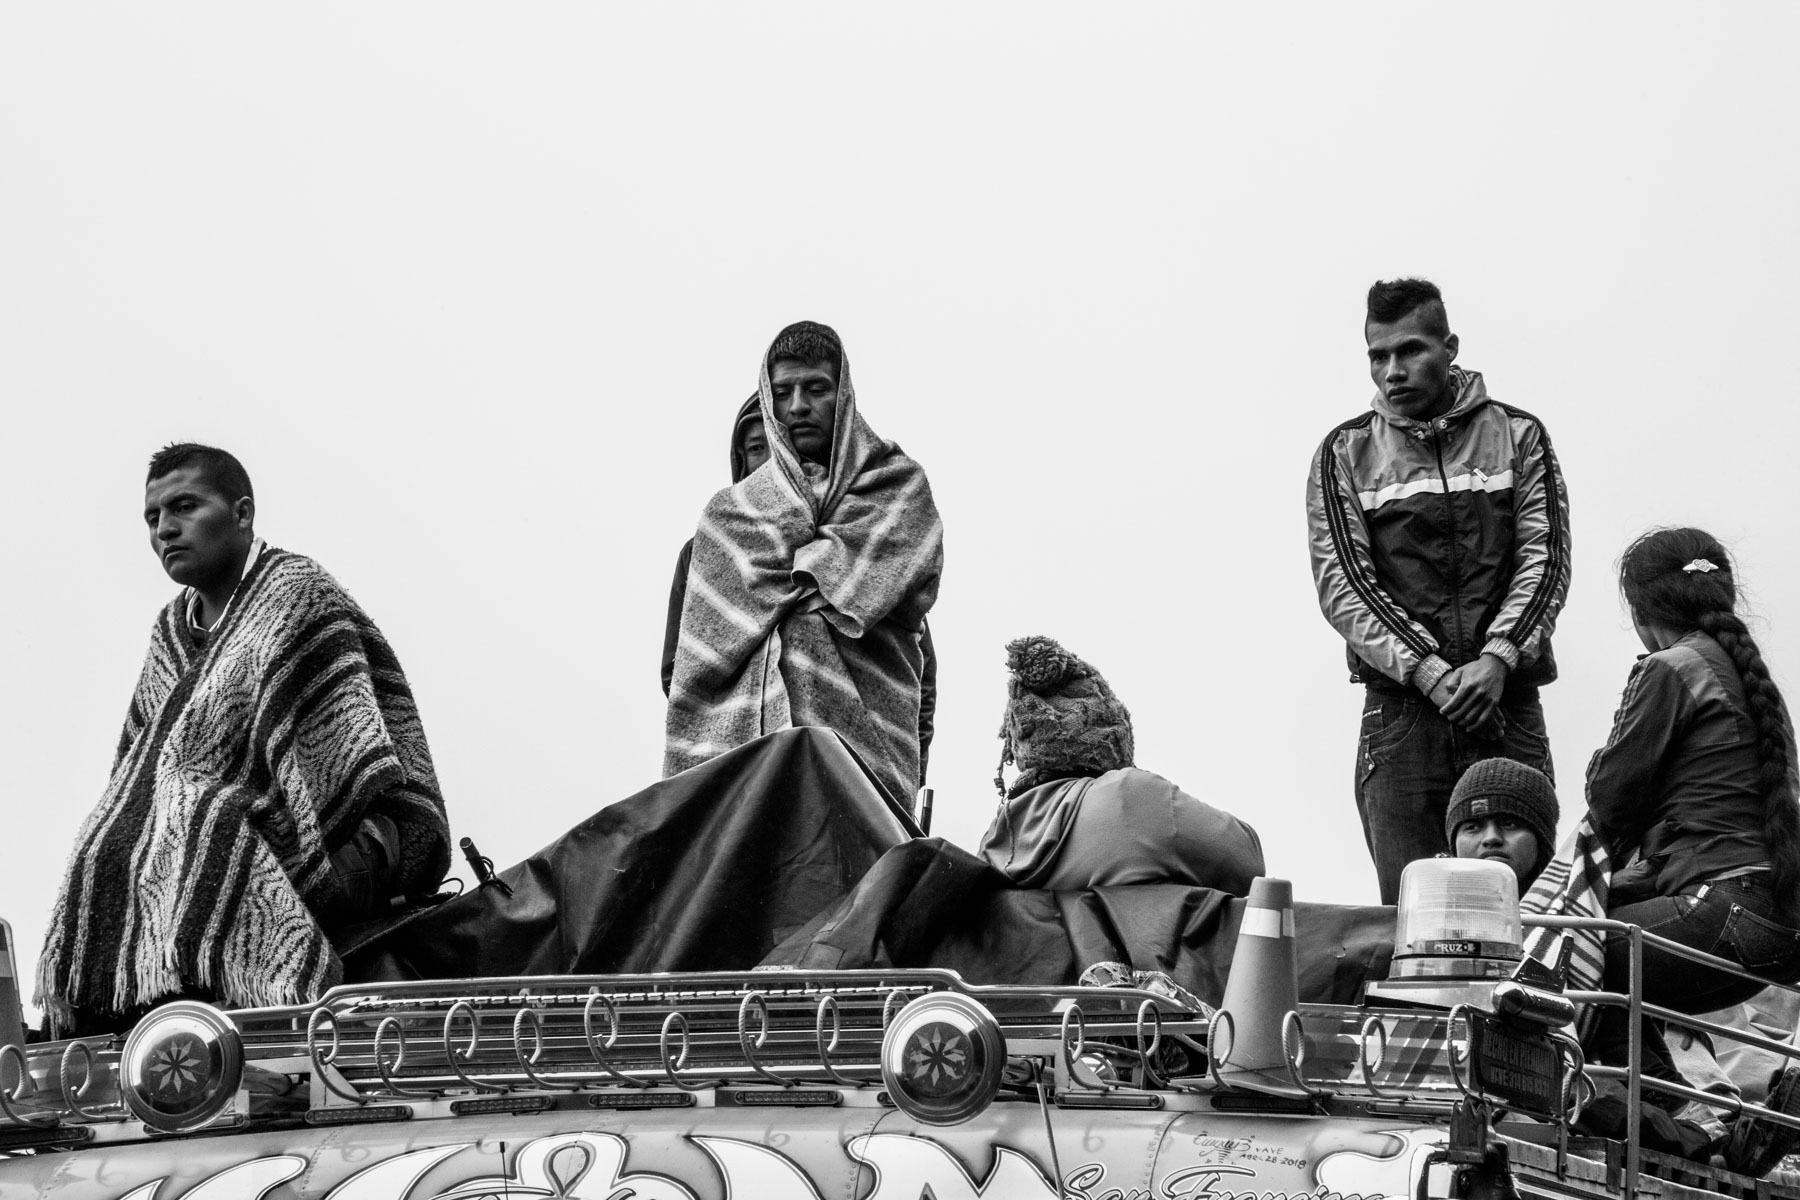 "Members of the Nasa indigenous community stand on the roof of a 'chiva' (bus) while listen to the speech of their political leader at the end of the celebration of the cleansing ritual of the 'Khabu fxizehnxi' ('Refreshing of the Batons""), one of the five main rituals of the Nasa indigenous people of the Cauca region in Colombia. The leader warns them about the  threats and murders that are increasing exponentially within the territory. Cauca region, Colombia, January 2019."